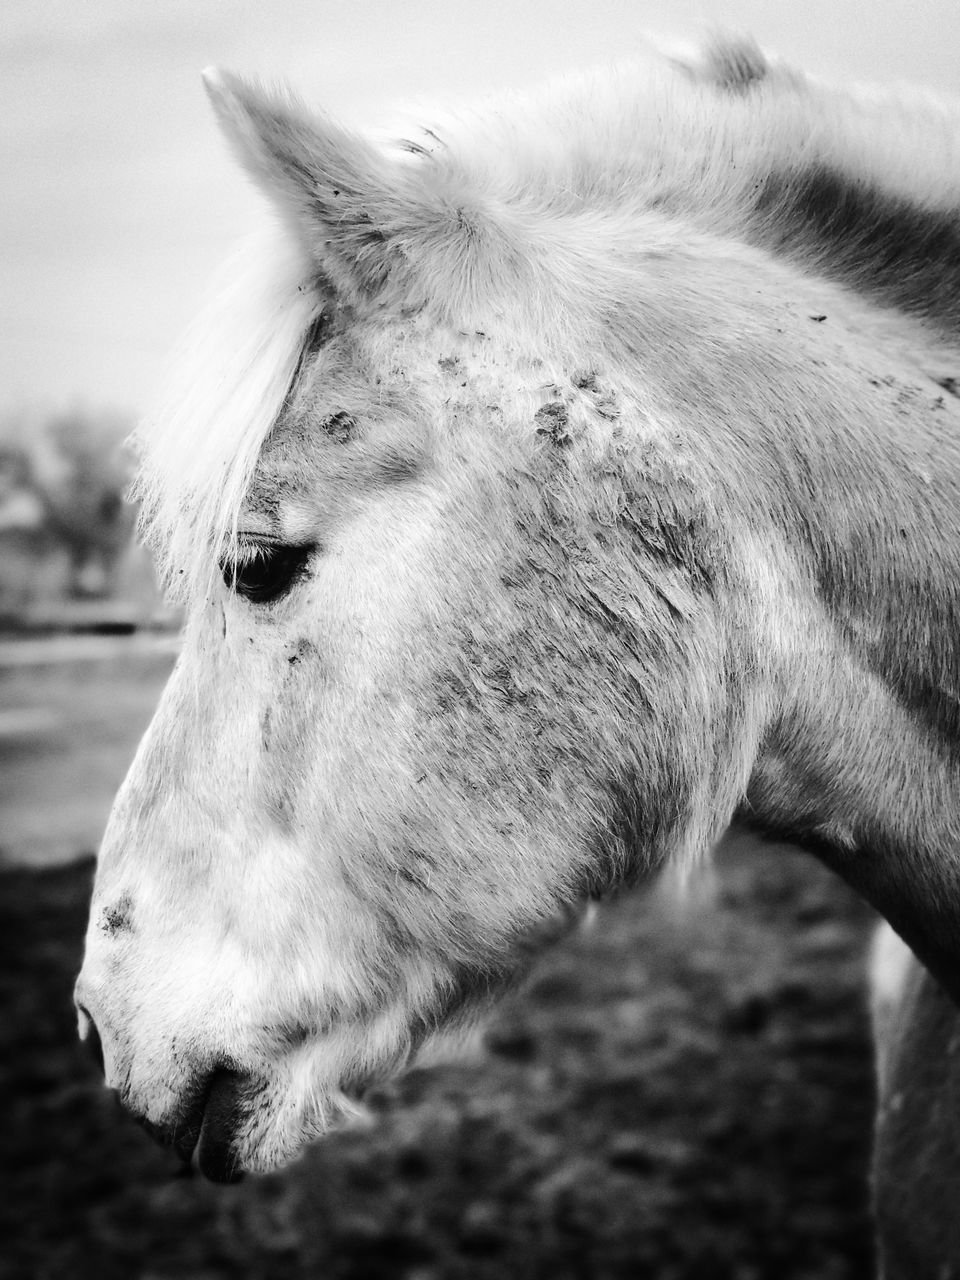 domestic animals, animal themes, horse, one animal, mammal, livestock, animal head, focus on foreground, day, outdoors, field, no people, close-up, nature